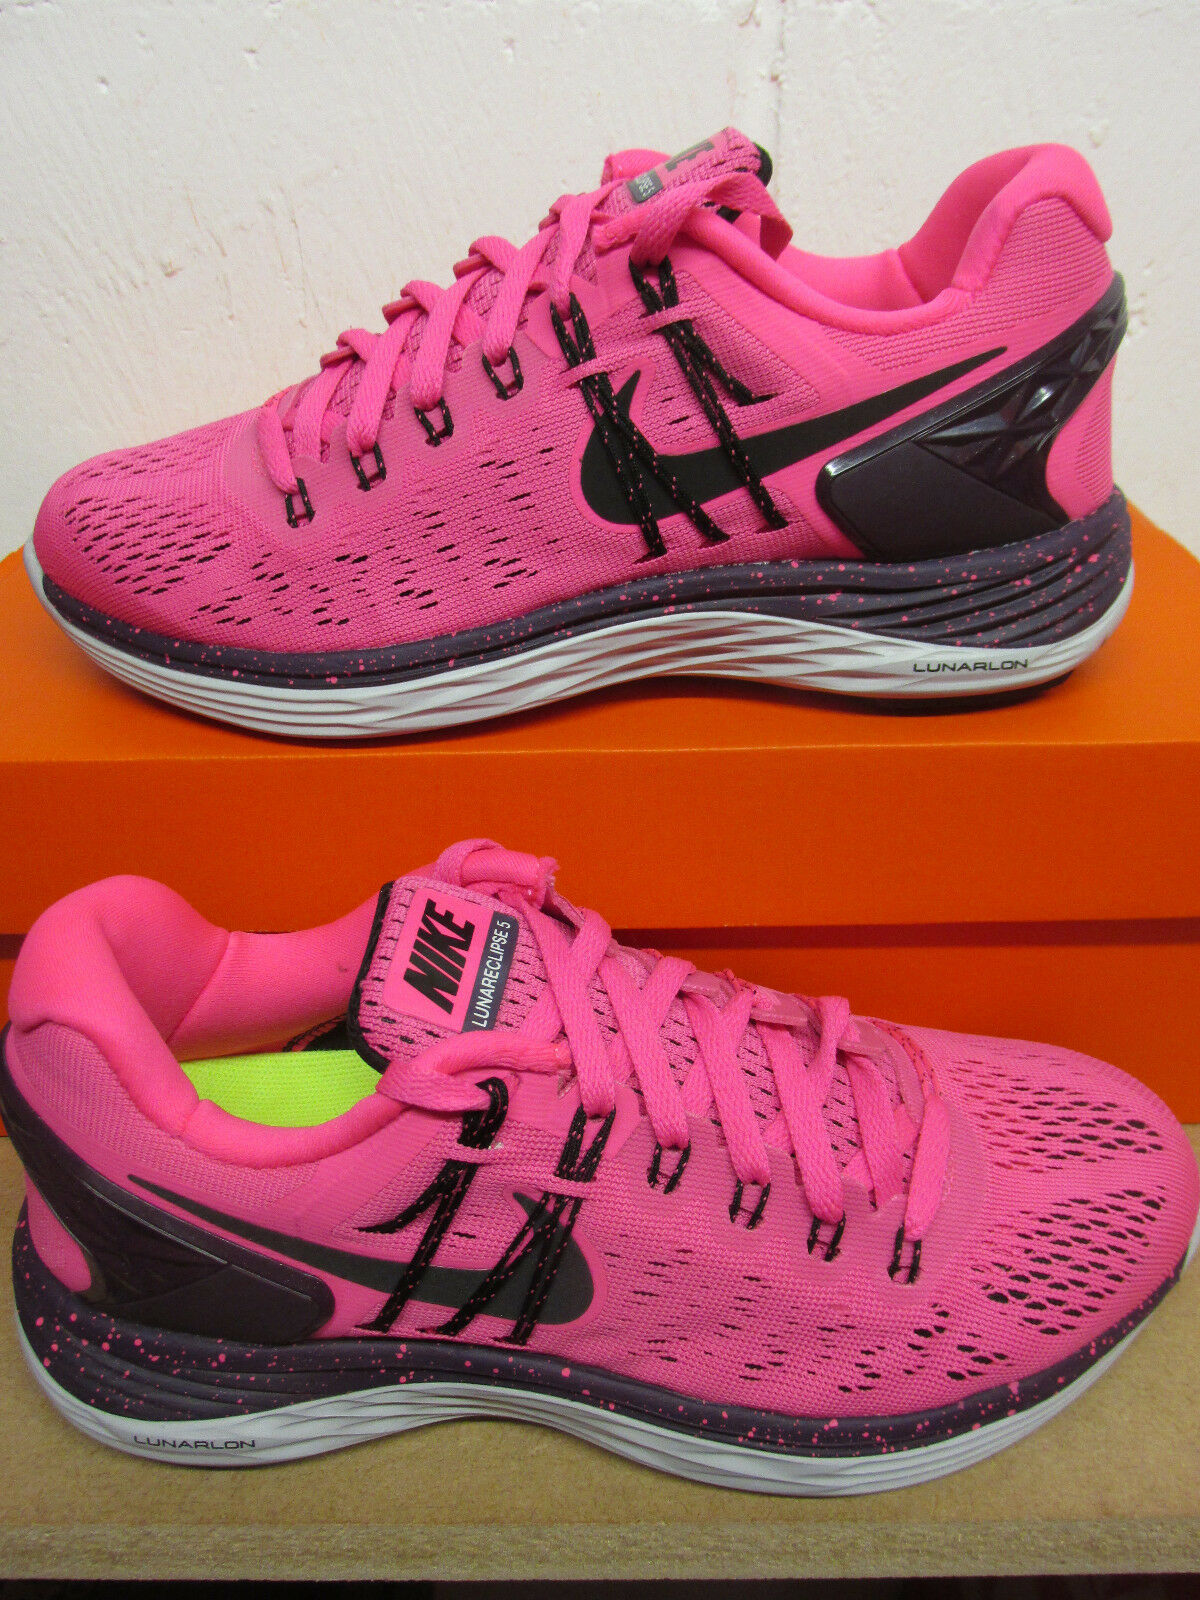 Nike womens lunareclipse 5 running trainers 705397 601 sneakers shoes